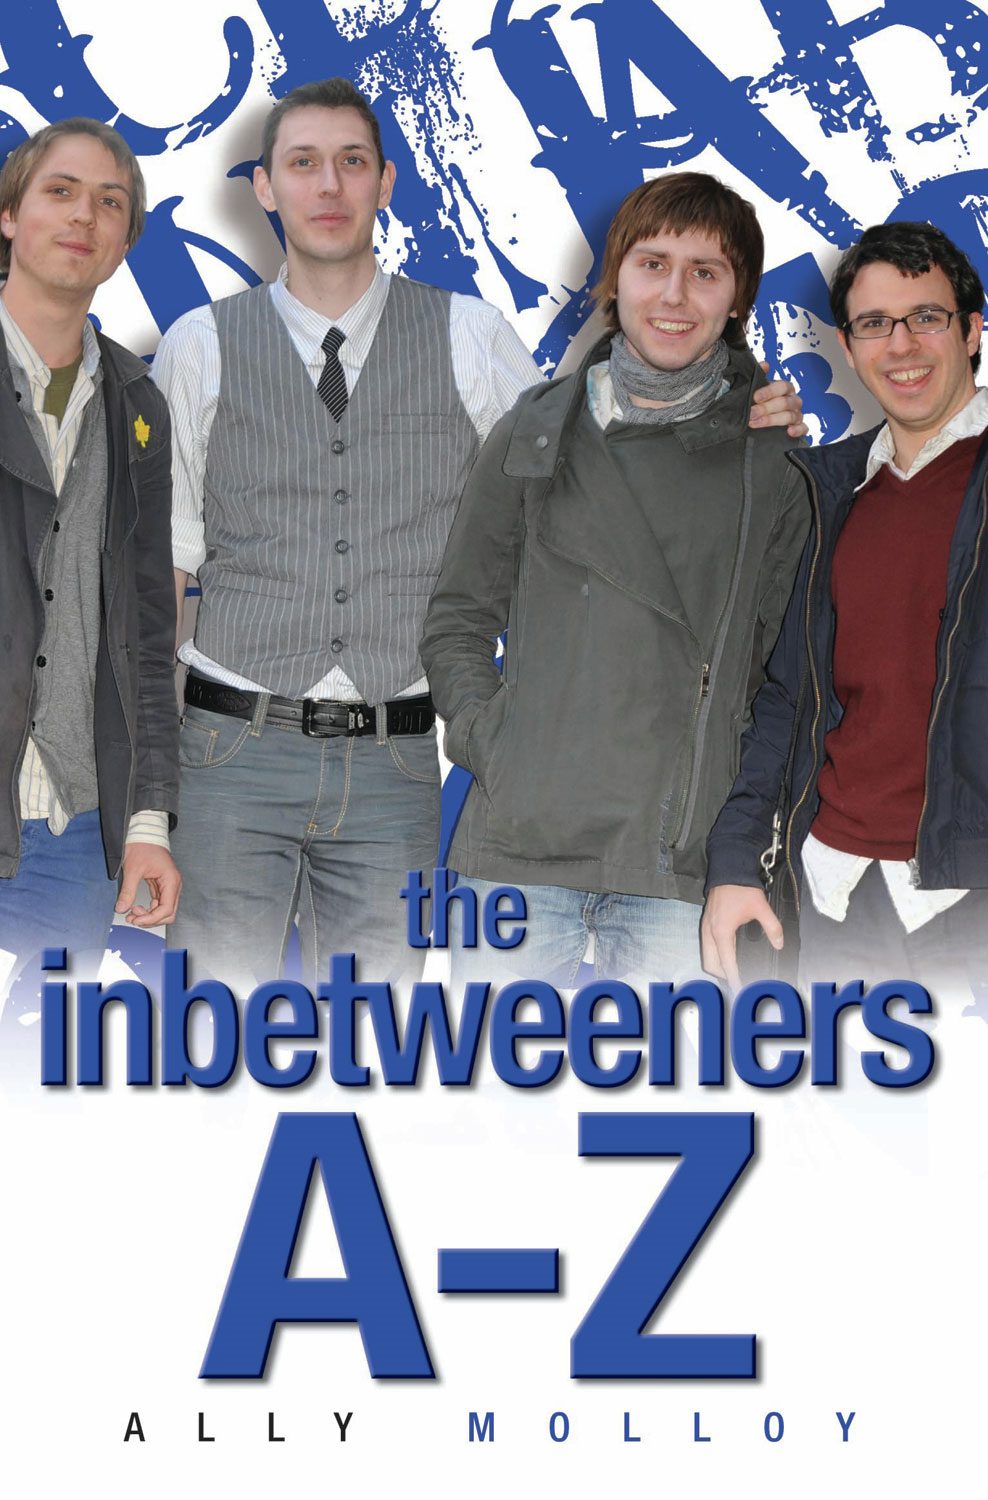 The Inbetweeners A-Z